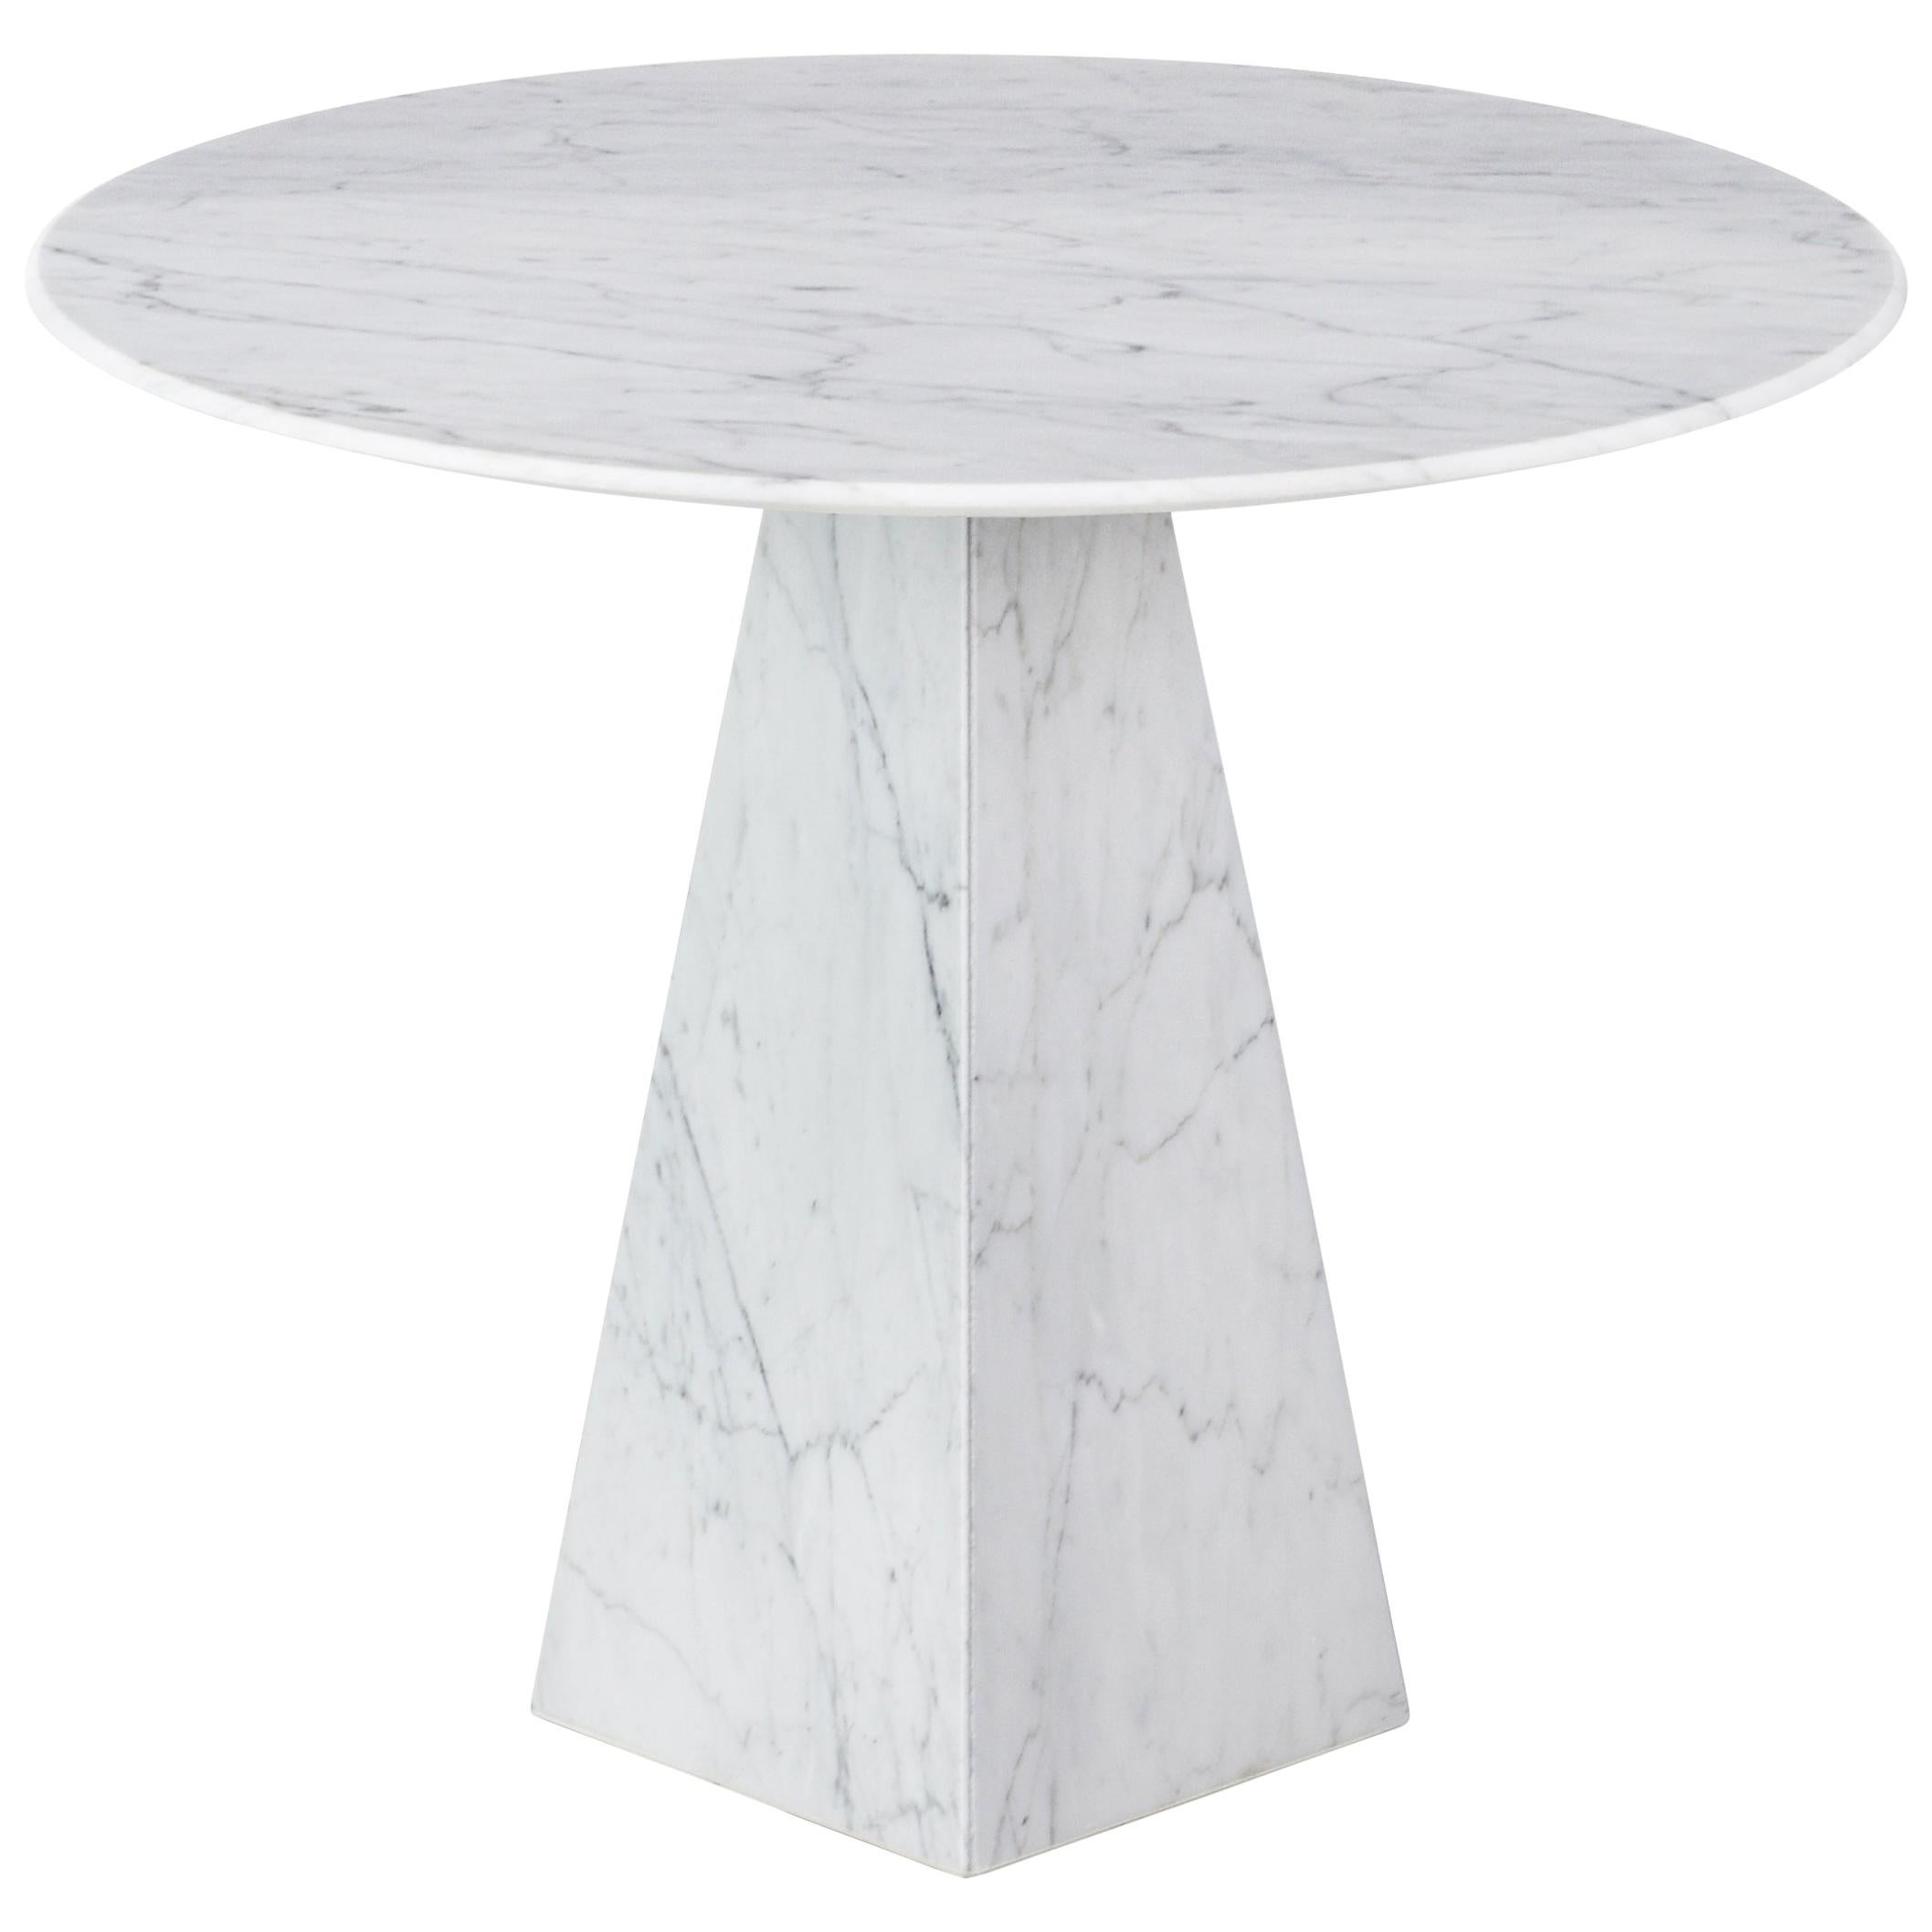 Ultra Thin White Carrara Marble Round Sidetable